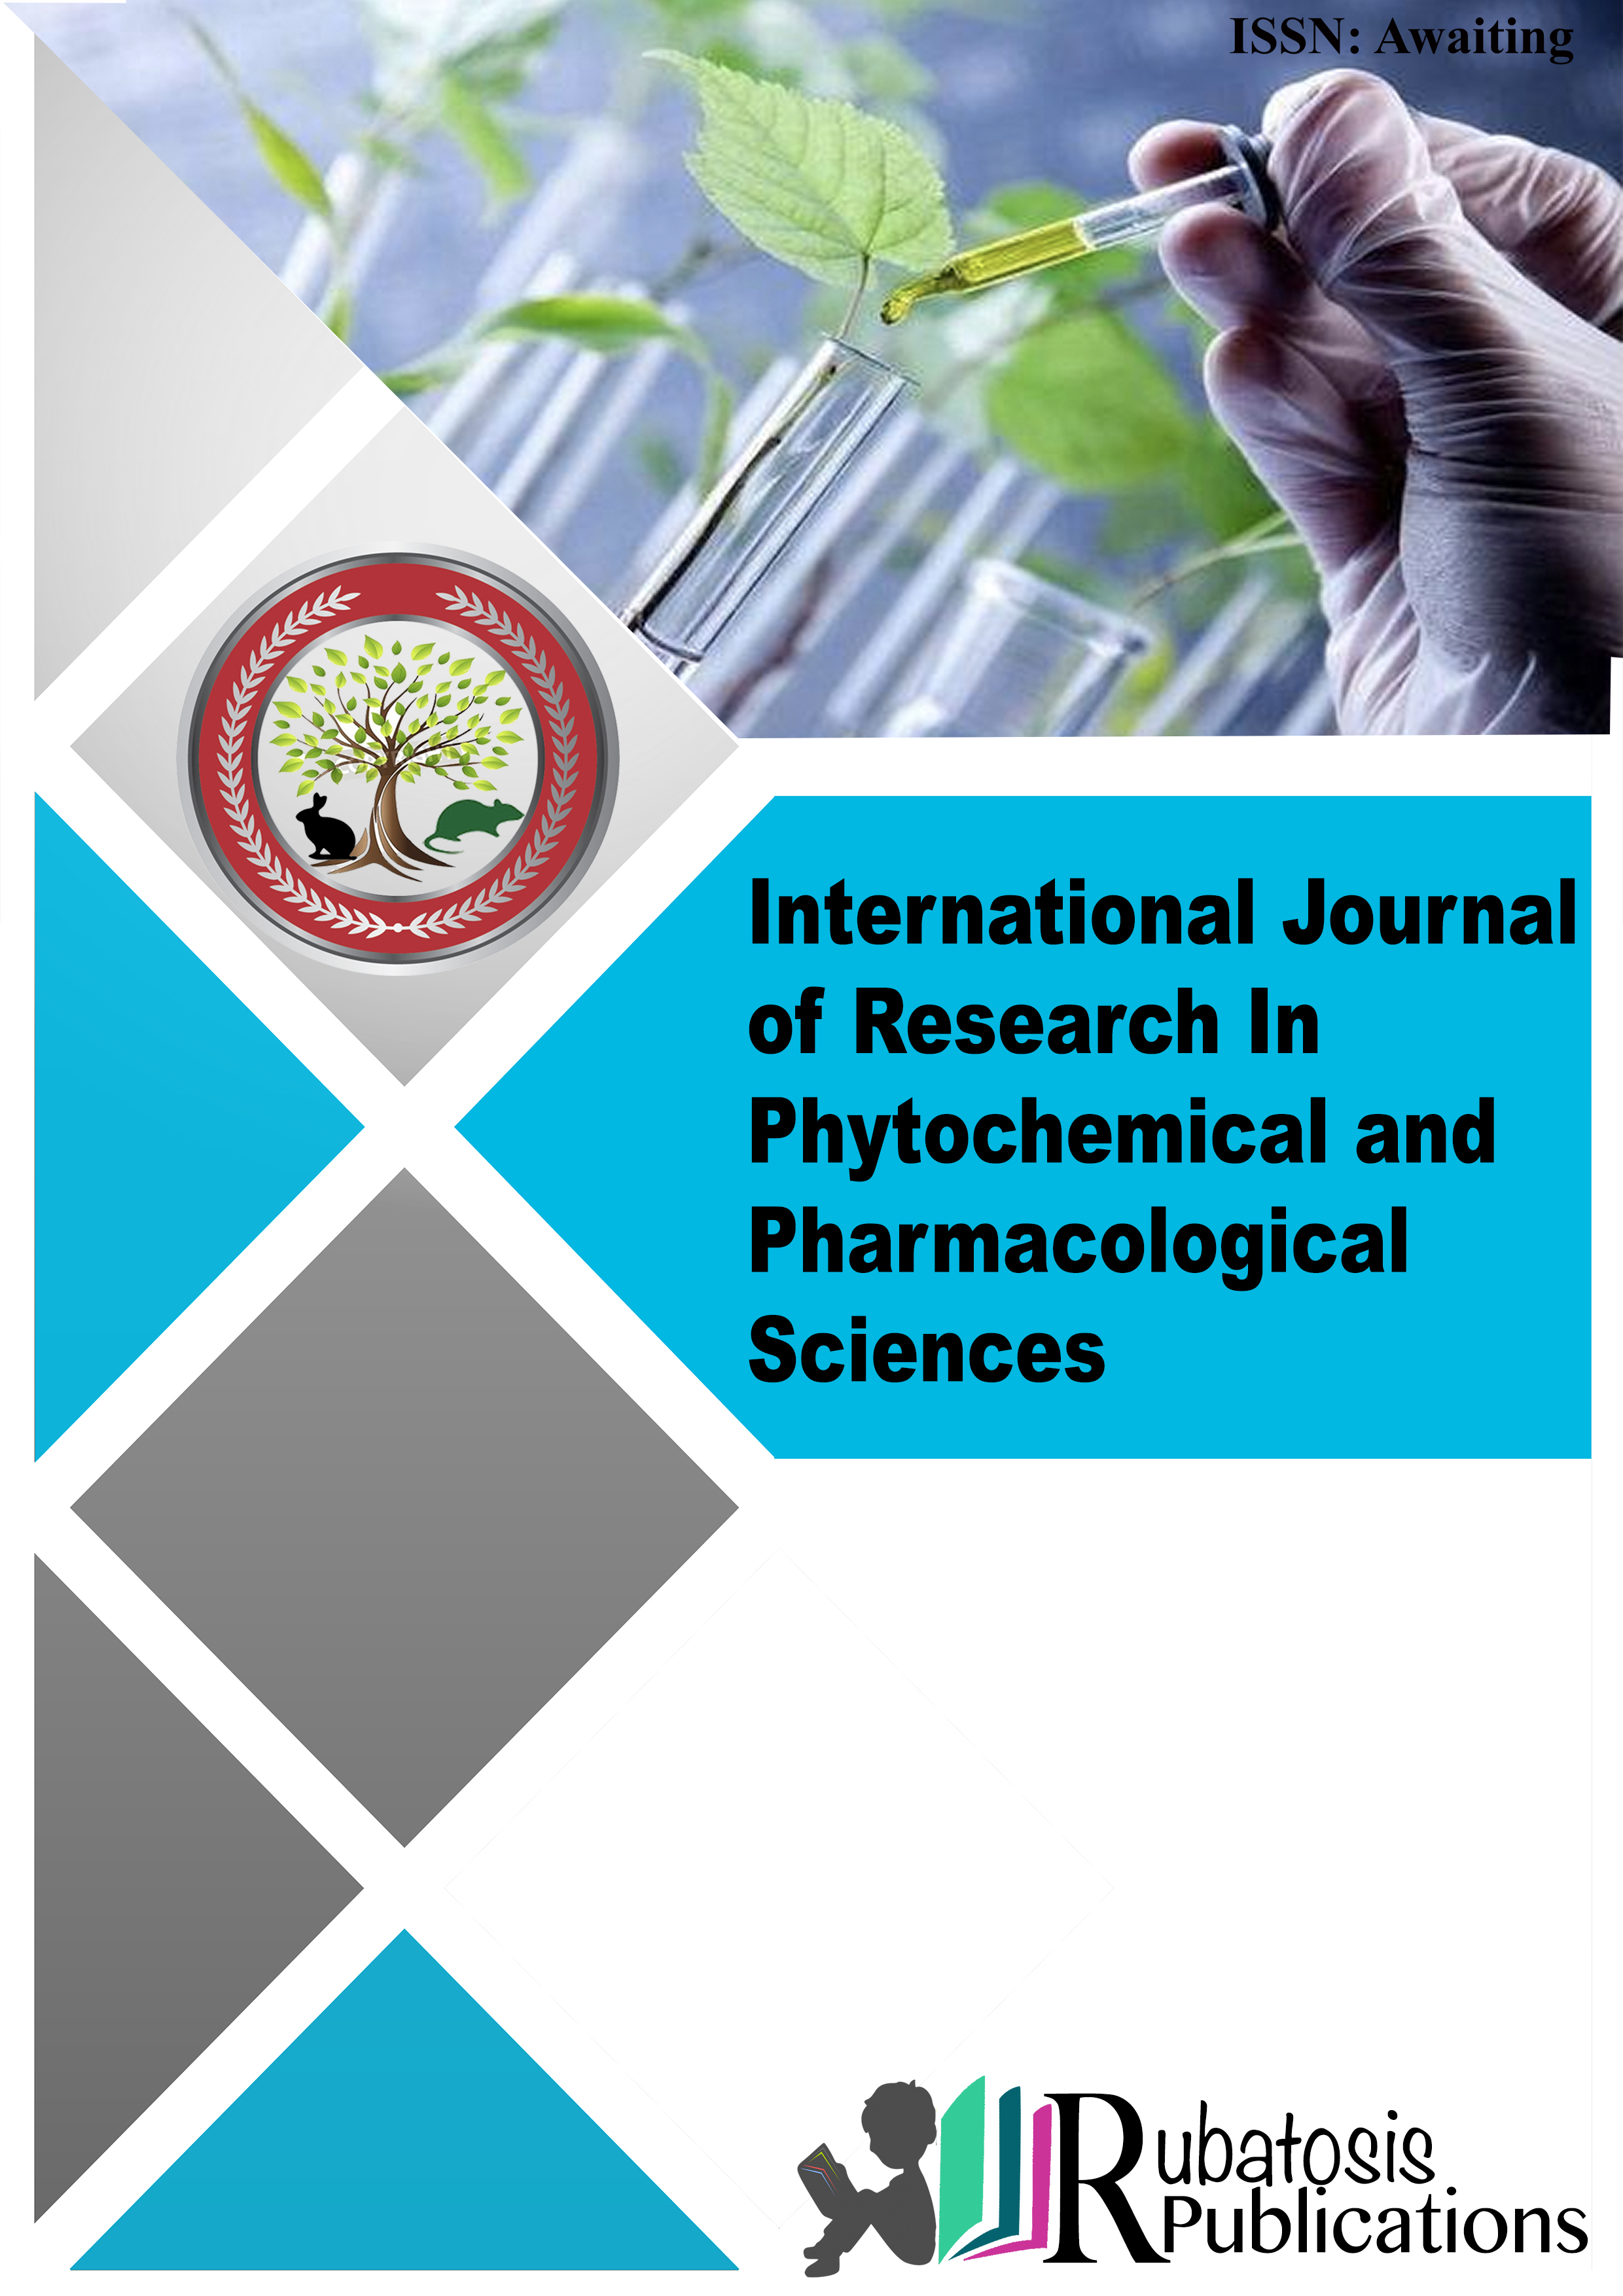 International Journal of Research In Phytochemical And Pharmacological Sciences